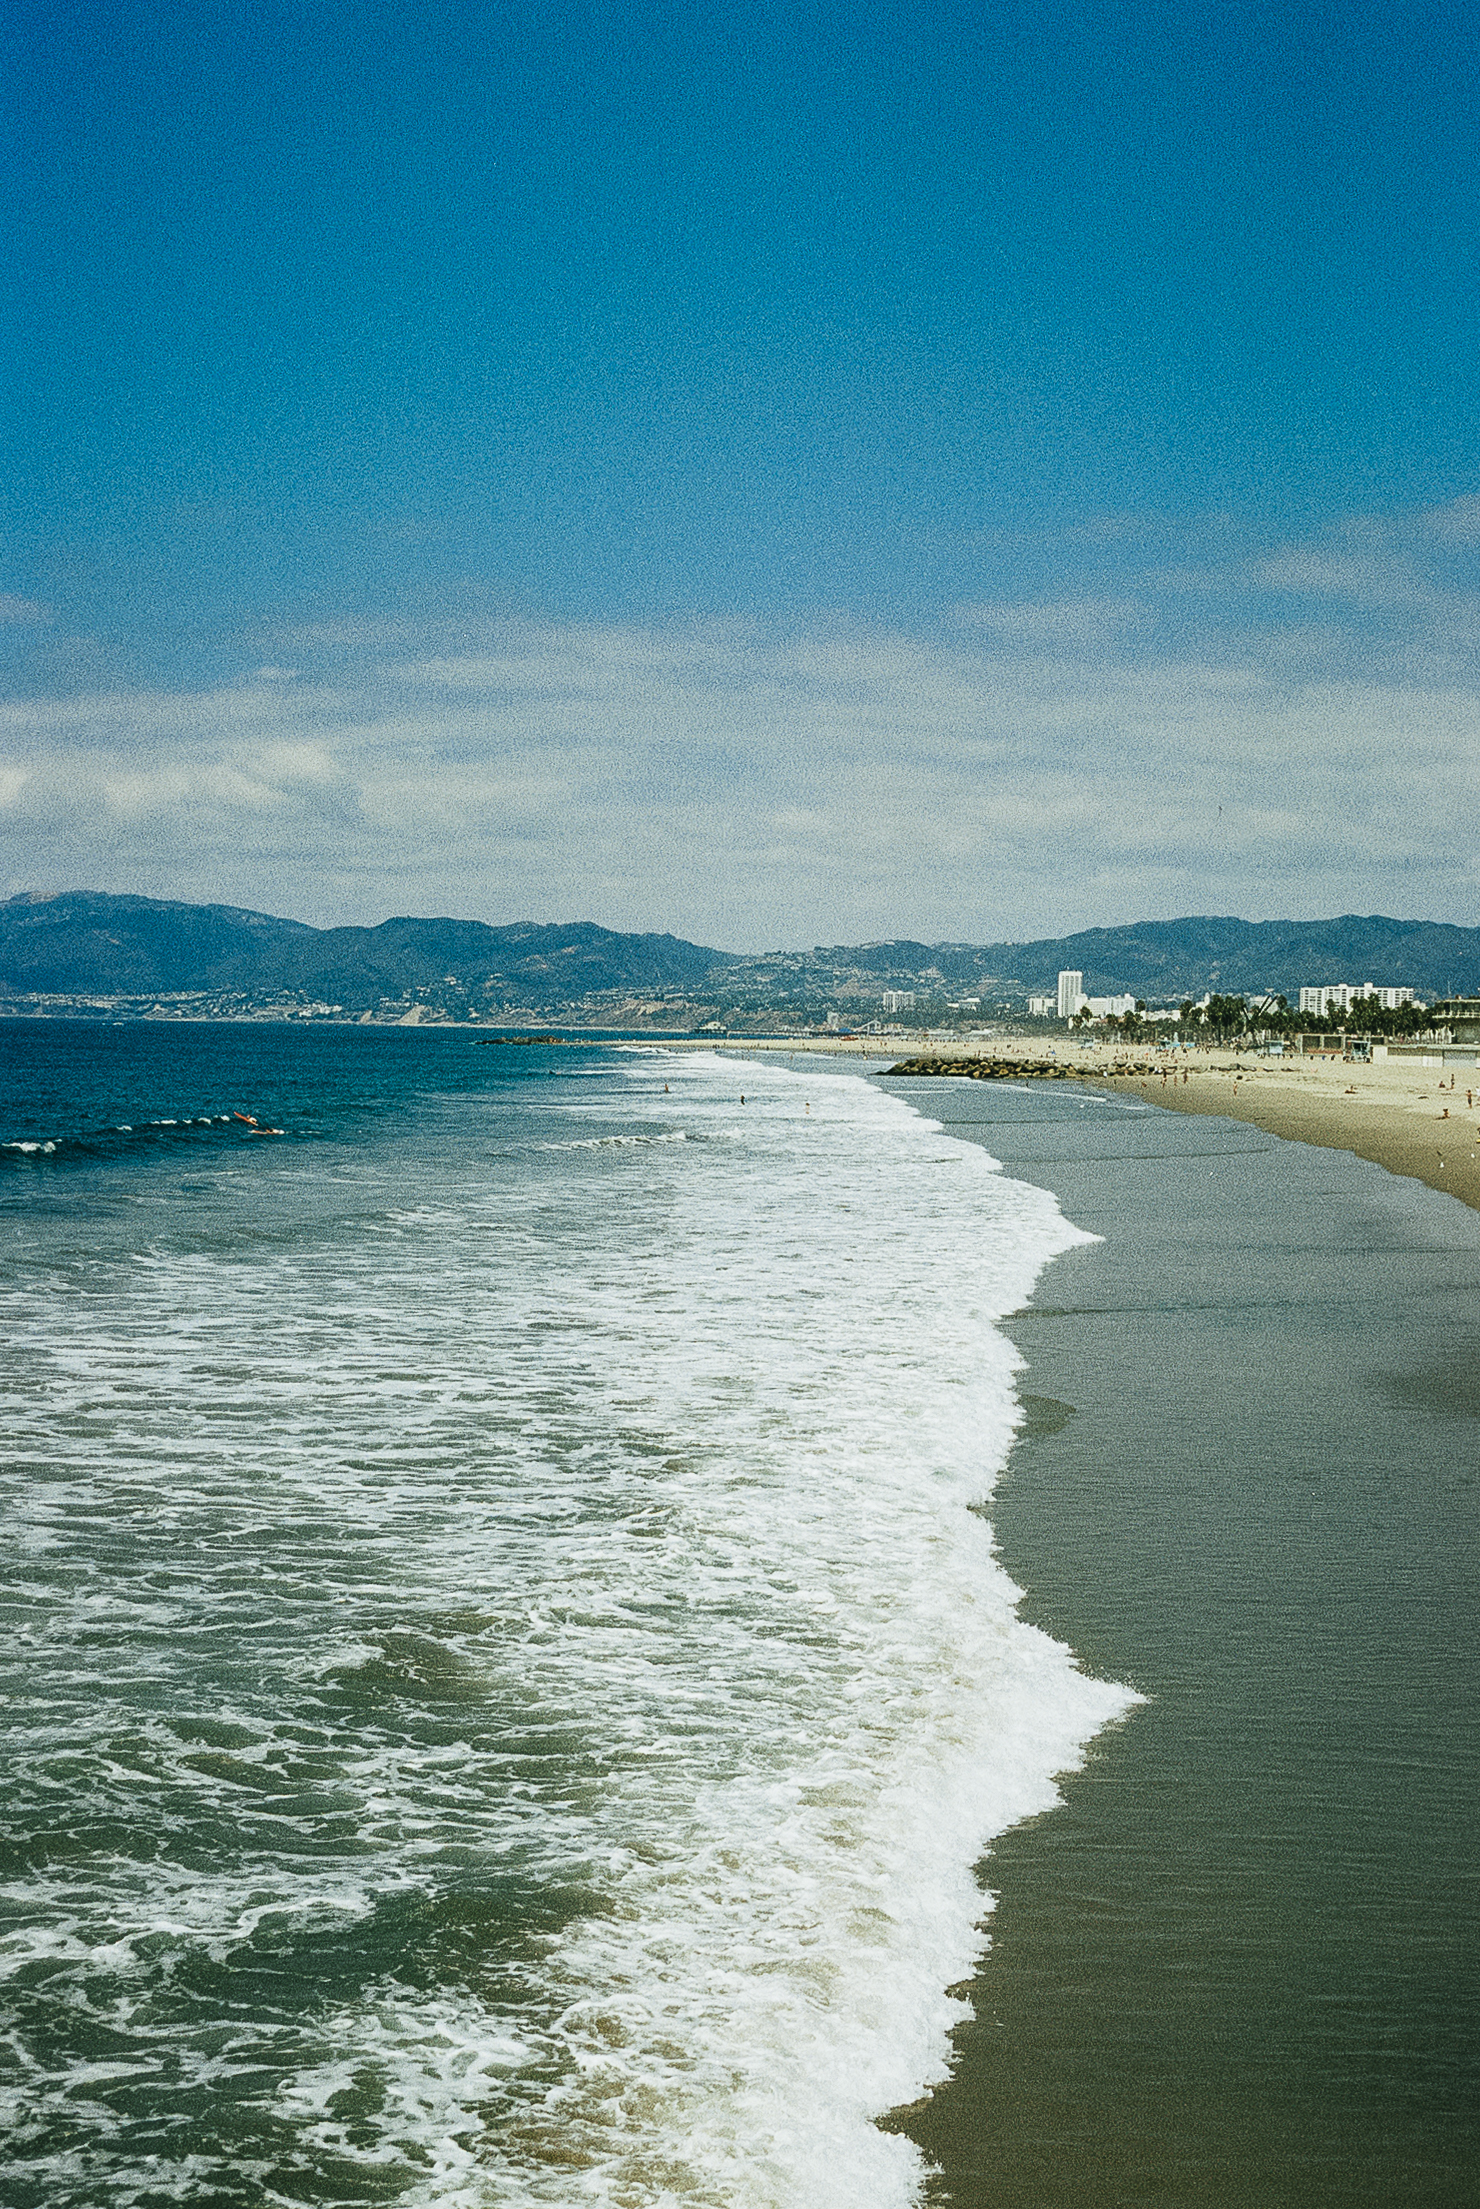 film_california_17_micha45-022.jpg